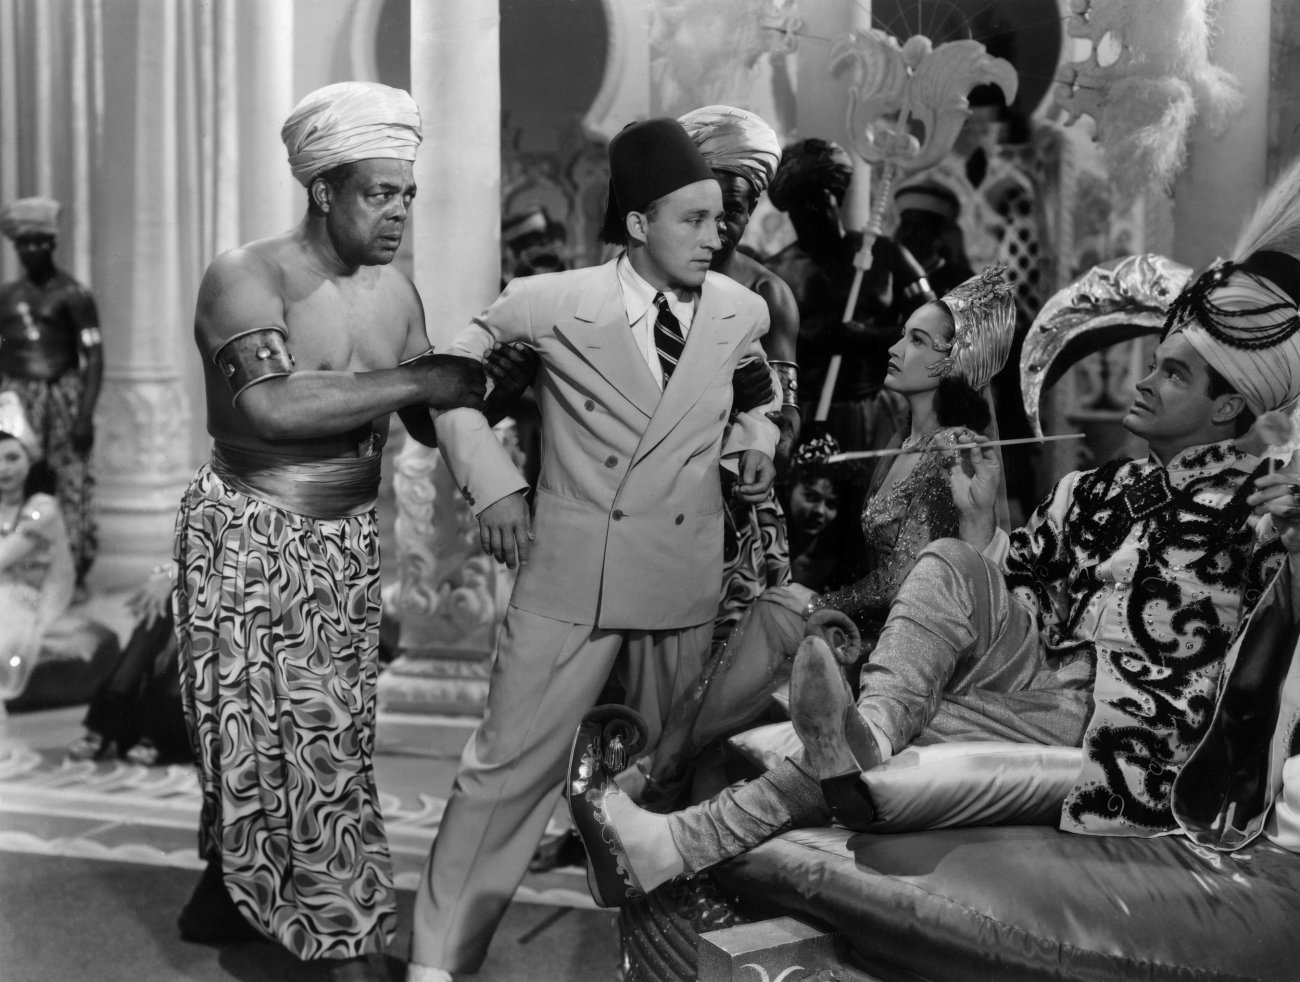 Bob Hope in Road to Morocco (L to R) Bing Crosby, Dorothy Lamour, Bob Hope